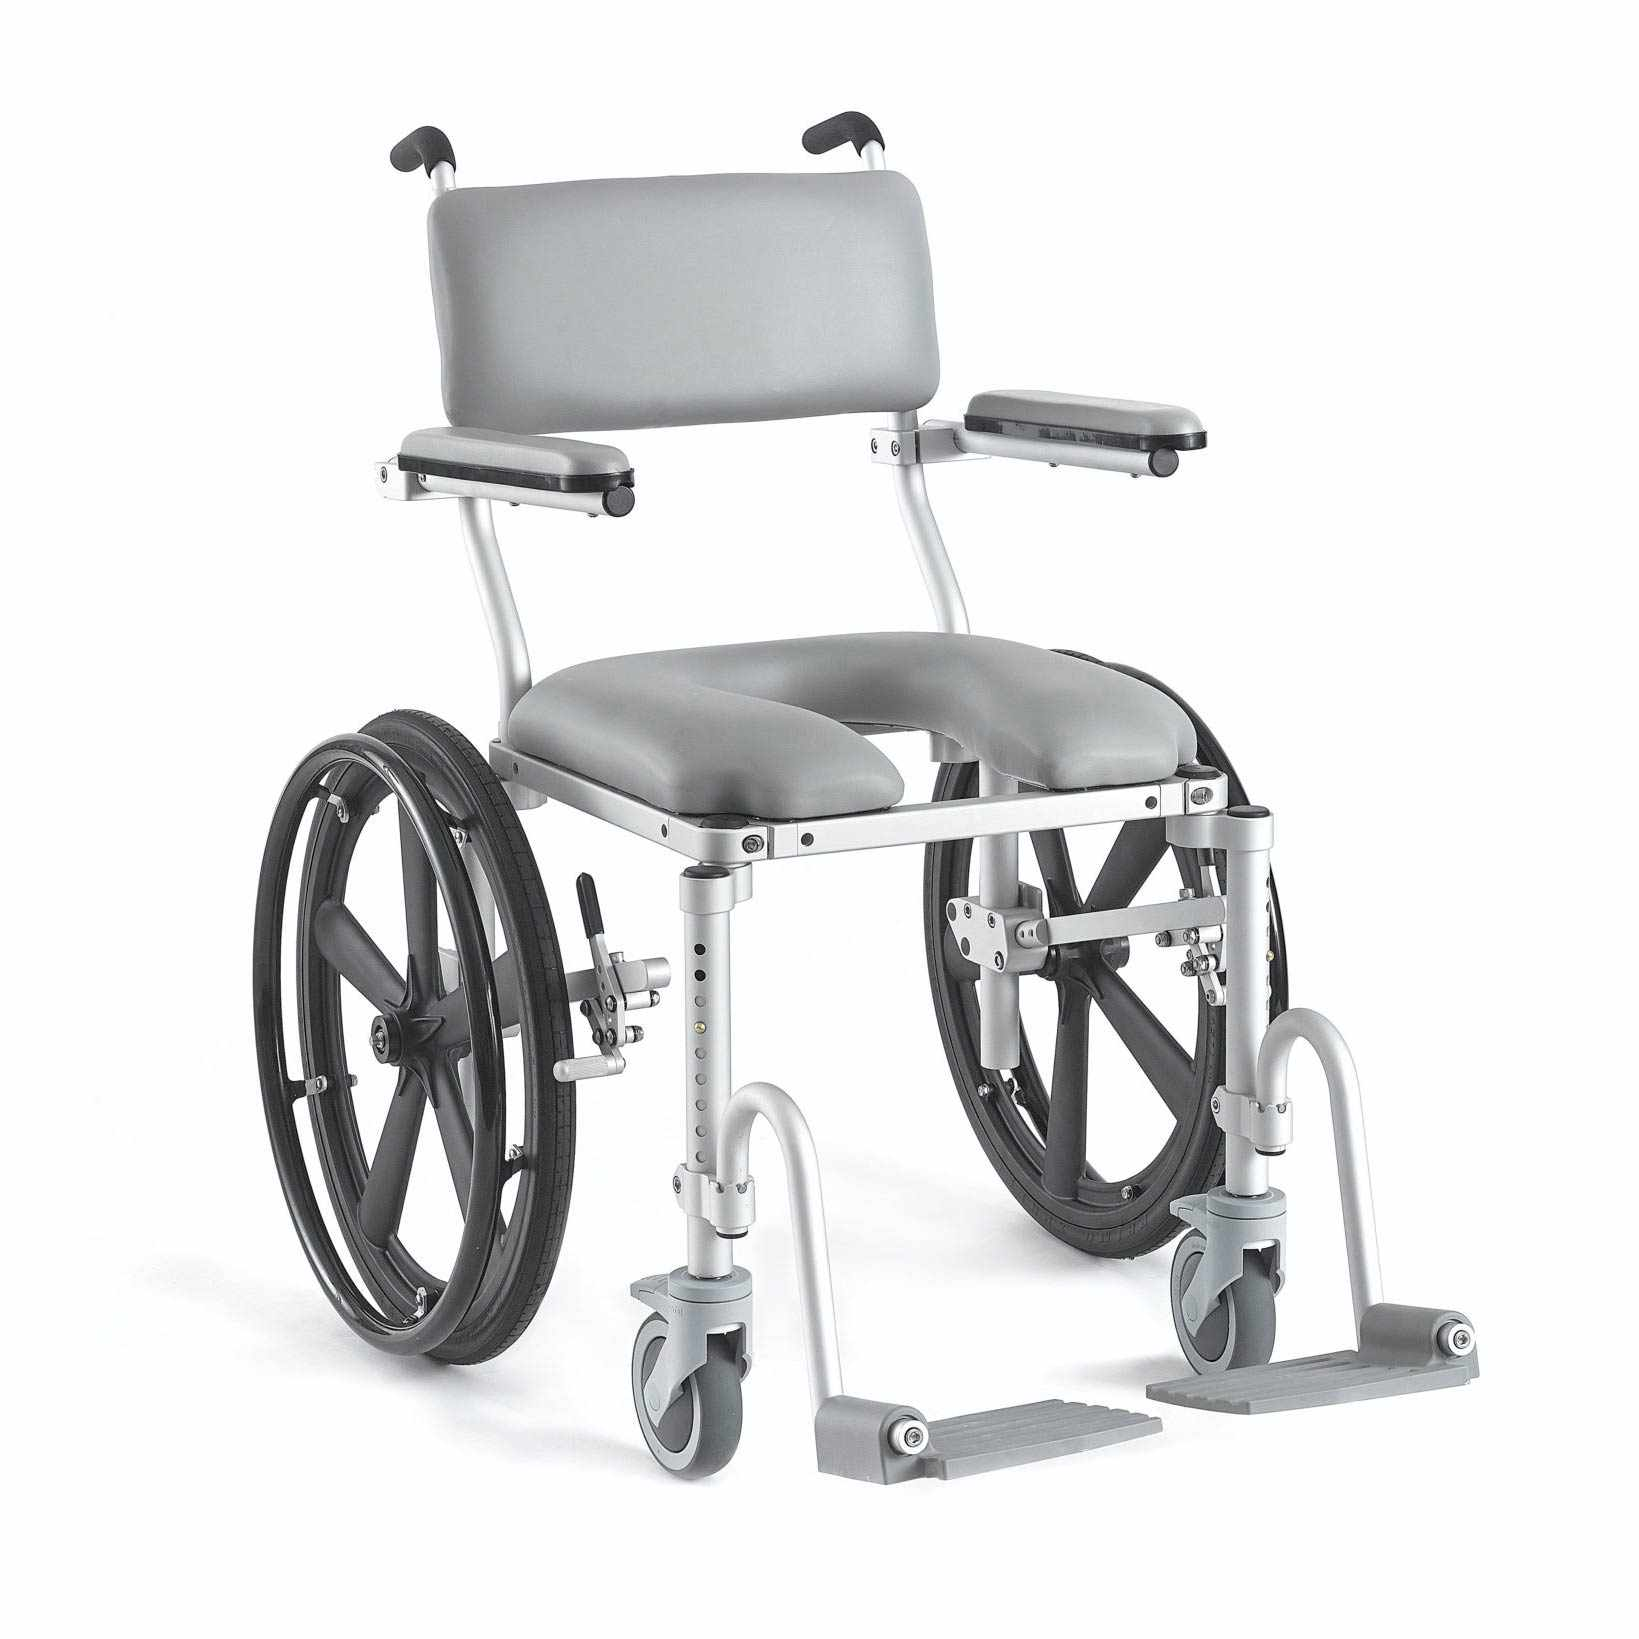 Nuprodx 4020 Roll-In-Shower Commode Chair | Medicaleshop